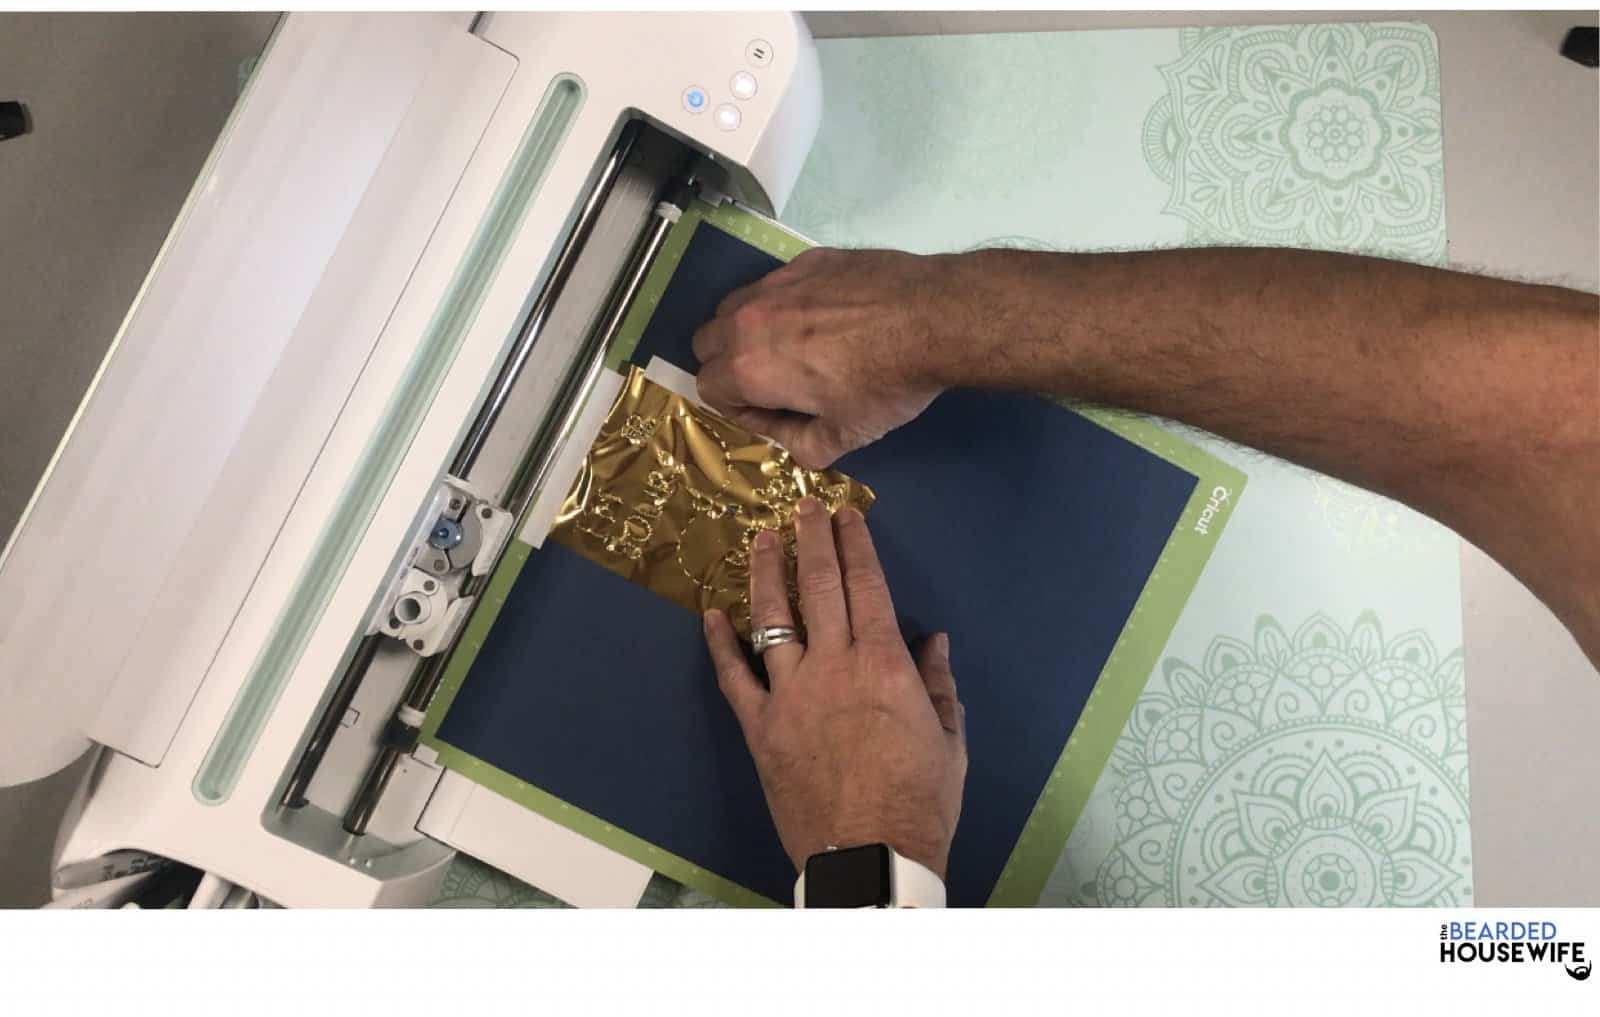 once foiling has completed, carefully remove the tape